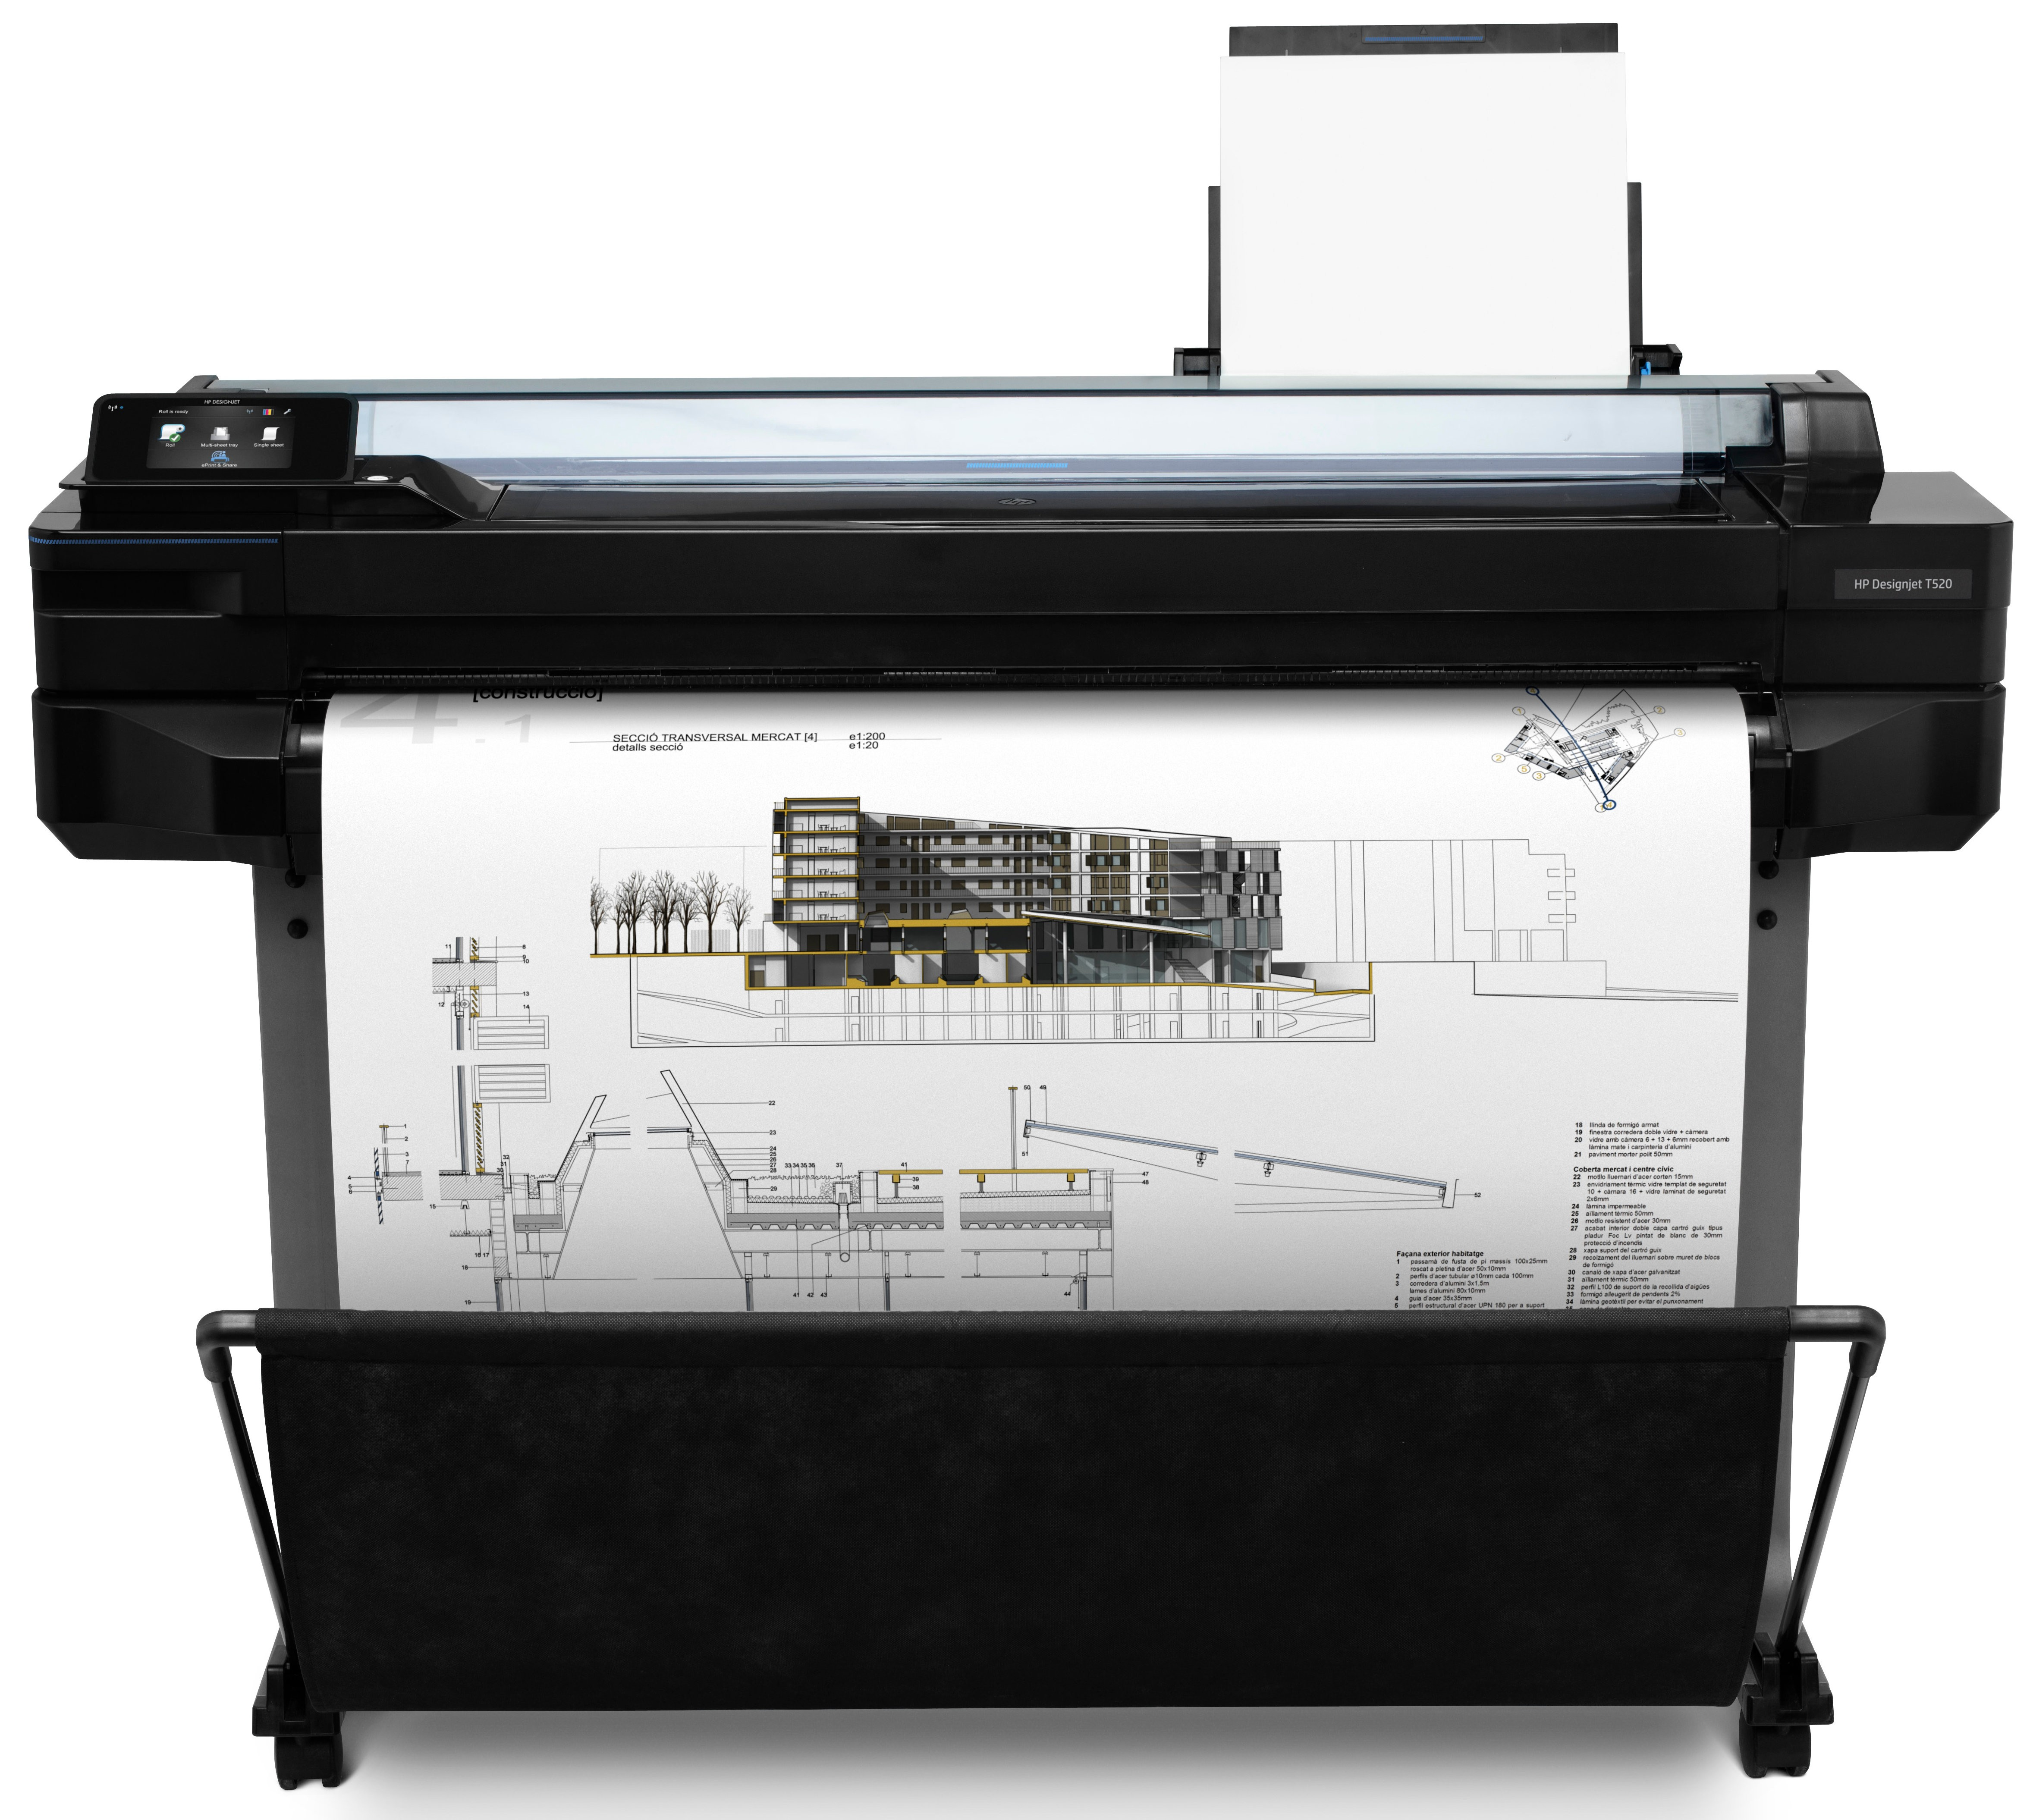 4 separate inks- Res 2400x1200dpi- Media handling: sheet feed- roll feed- input tray- automatic cutter- 1GB memory-  Network- Wi-FI- E-print- USB2.0  Supplies : 711 Black 711 Color